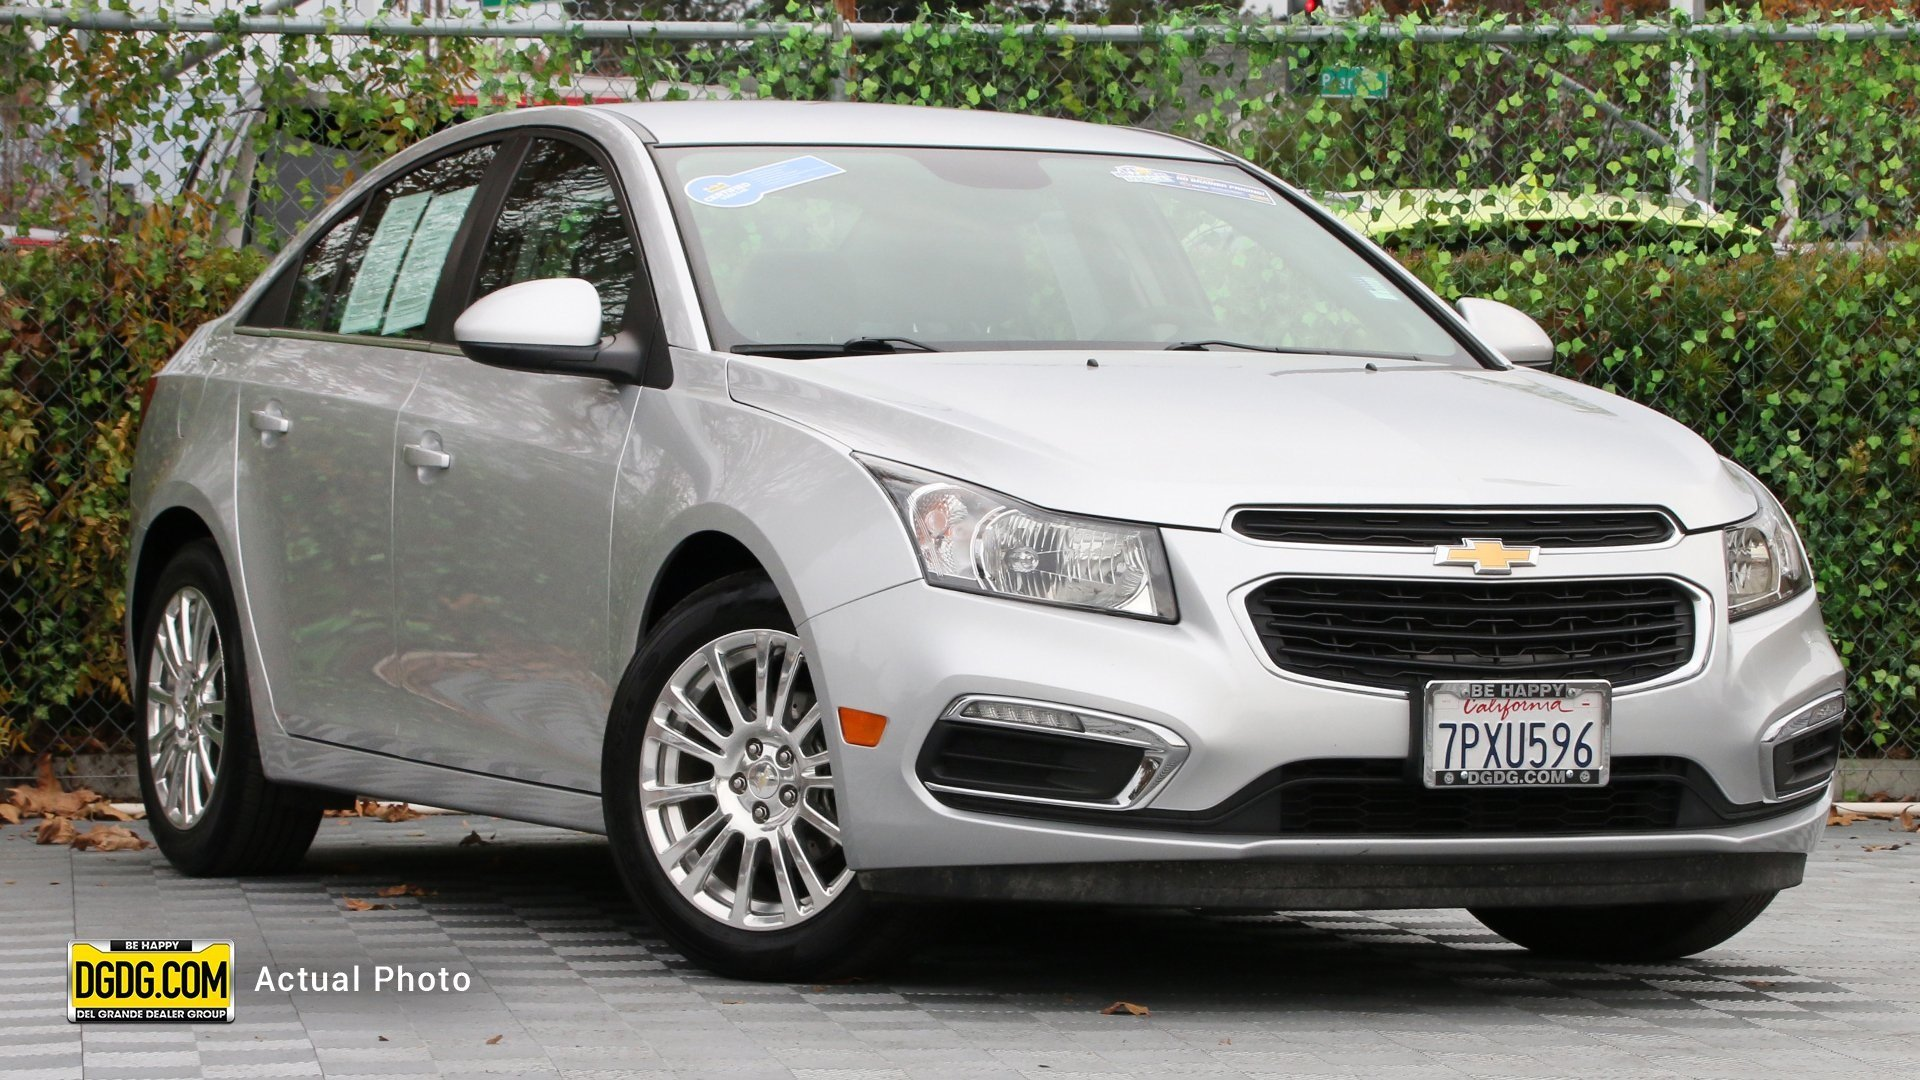 Certified Pre-Owned 2016 Chevrolet Cruze Limited ECO